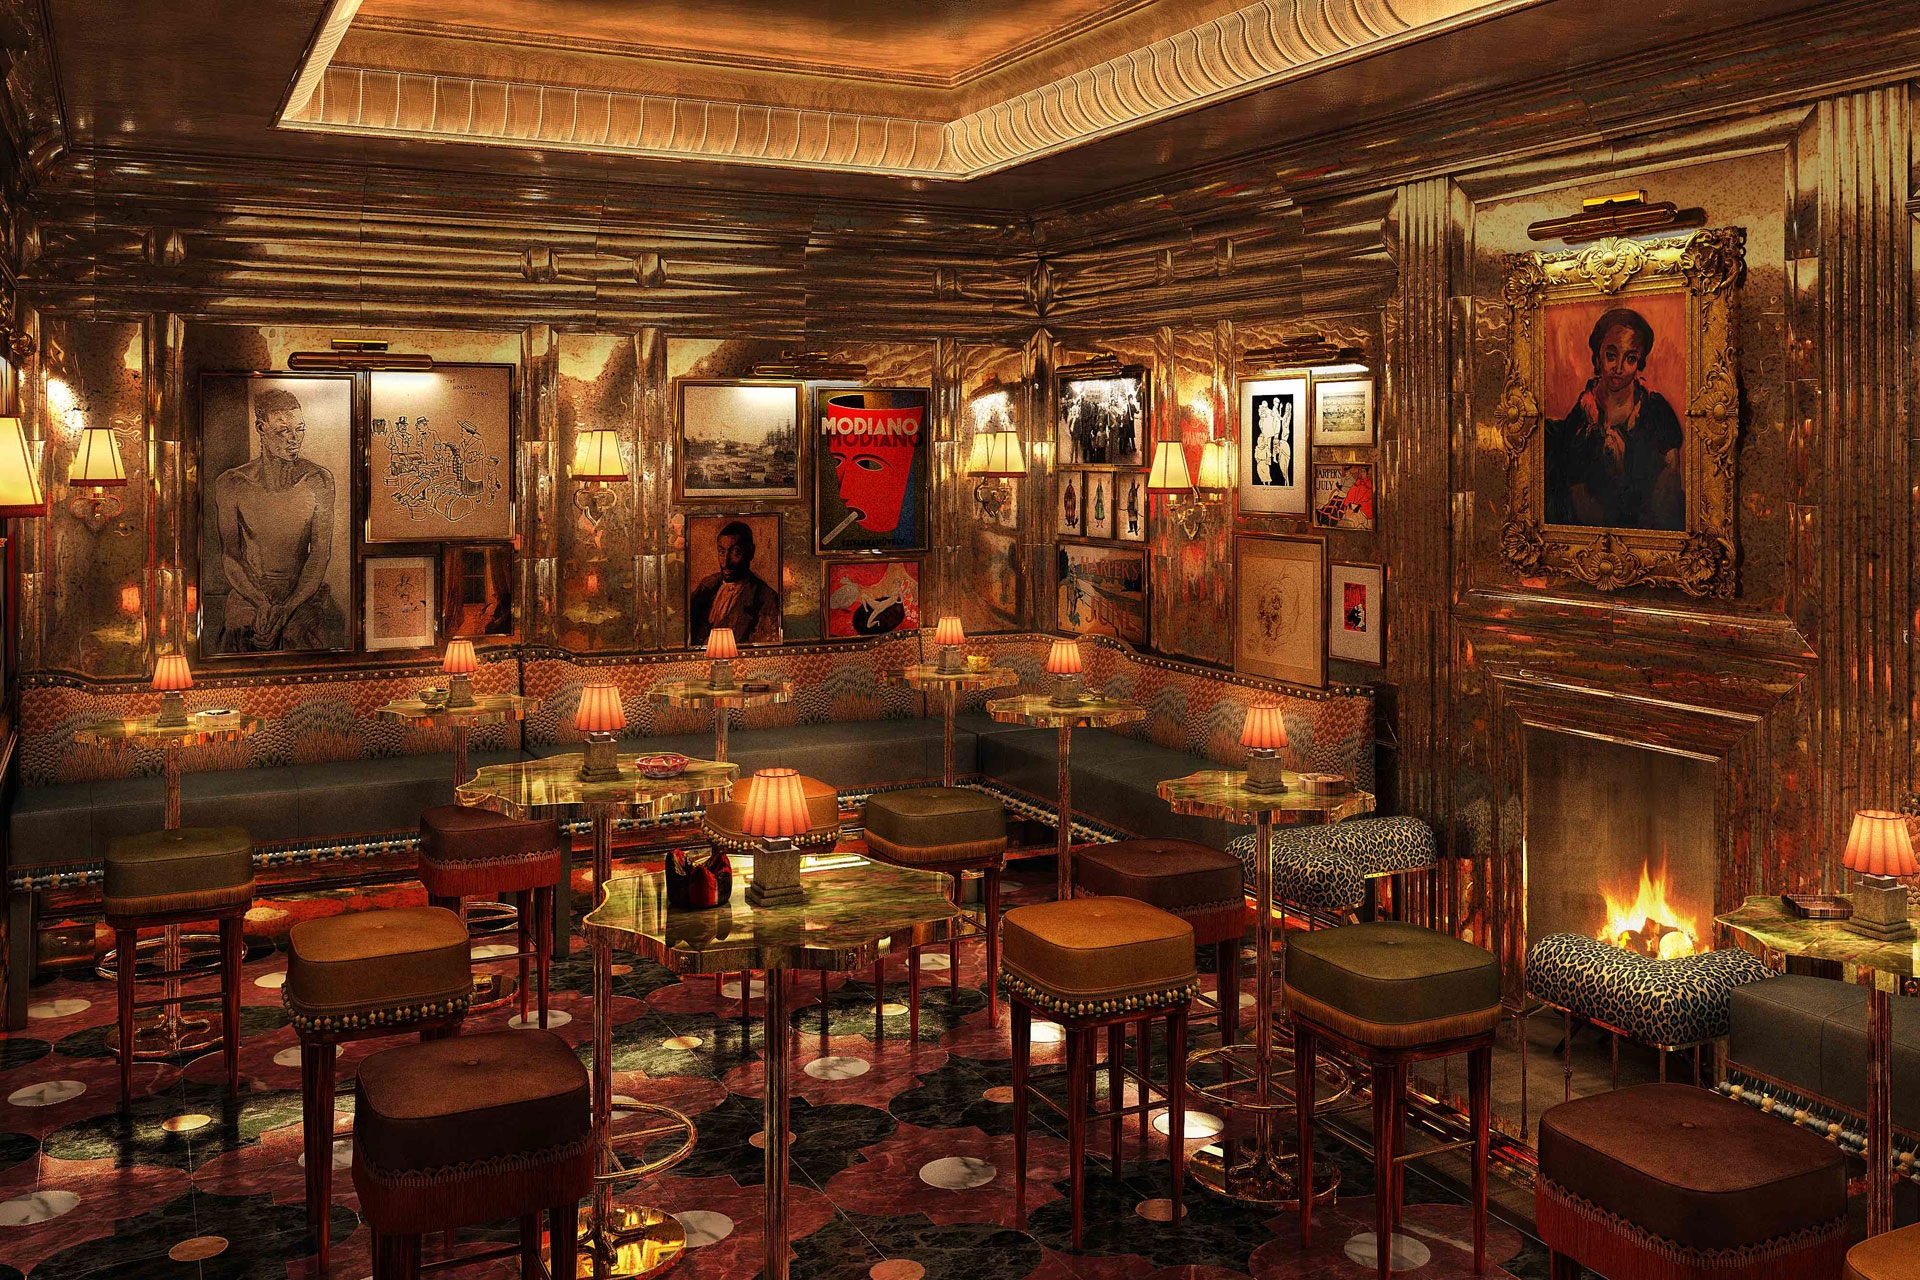 To mark the opening of the new Annabel's London, the Club has announced a cultural committee to help shape the identity of the Mayfair members' club and restaurant